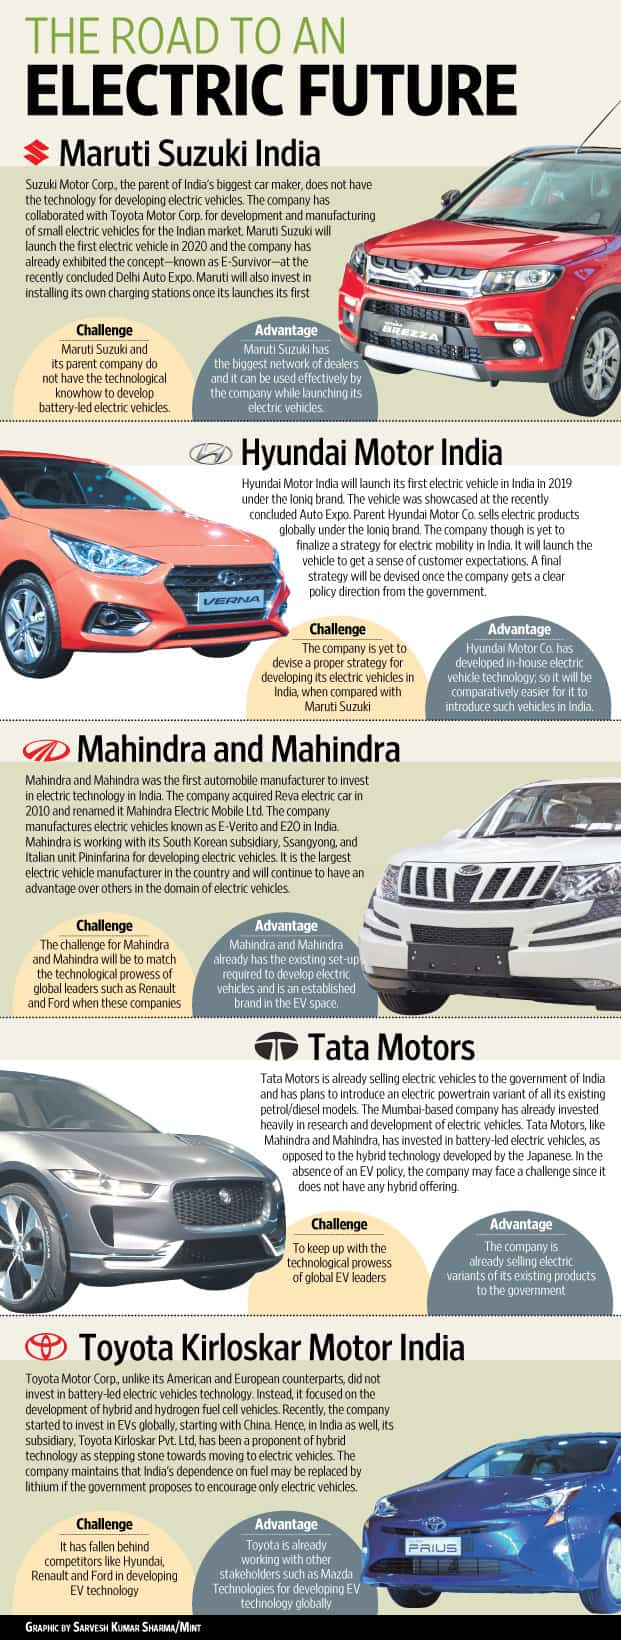 How 2 disruptions are reshaping India's automobile industry